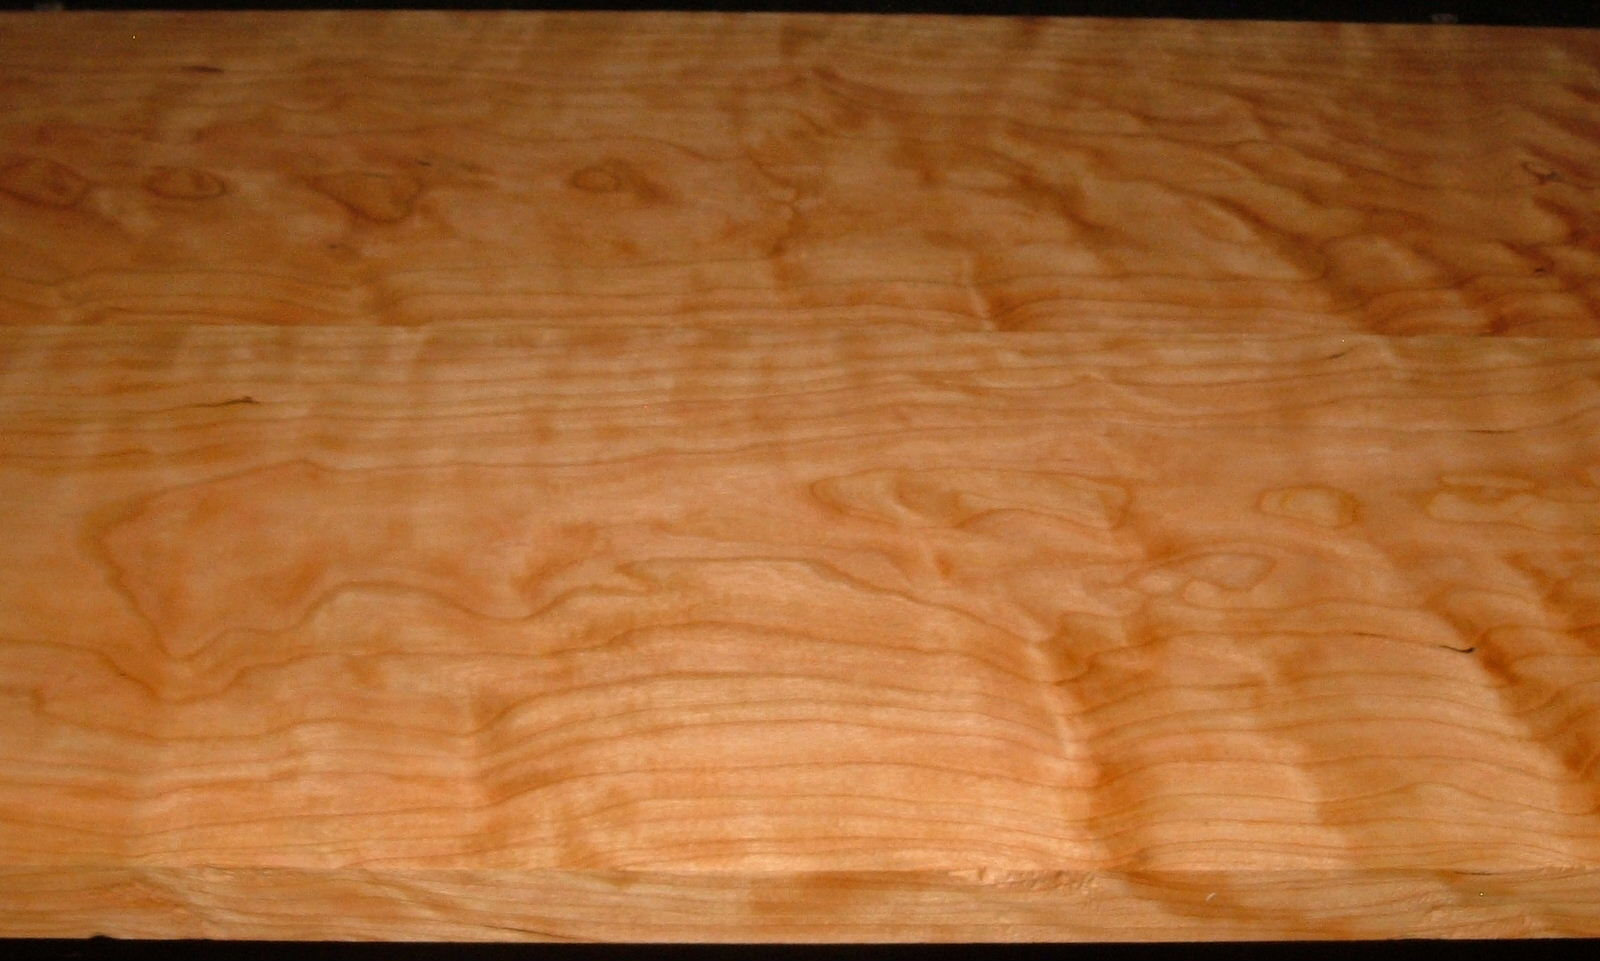 C2004-77,15/16x7-3/4x42,15/16x8x42, Curly Figured Cherry, (cut from same plank)